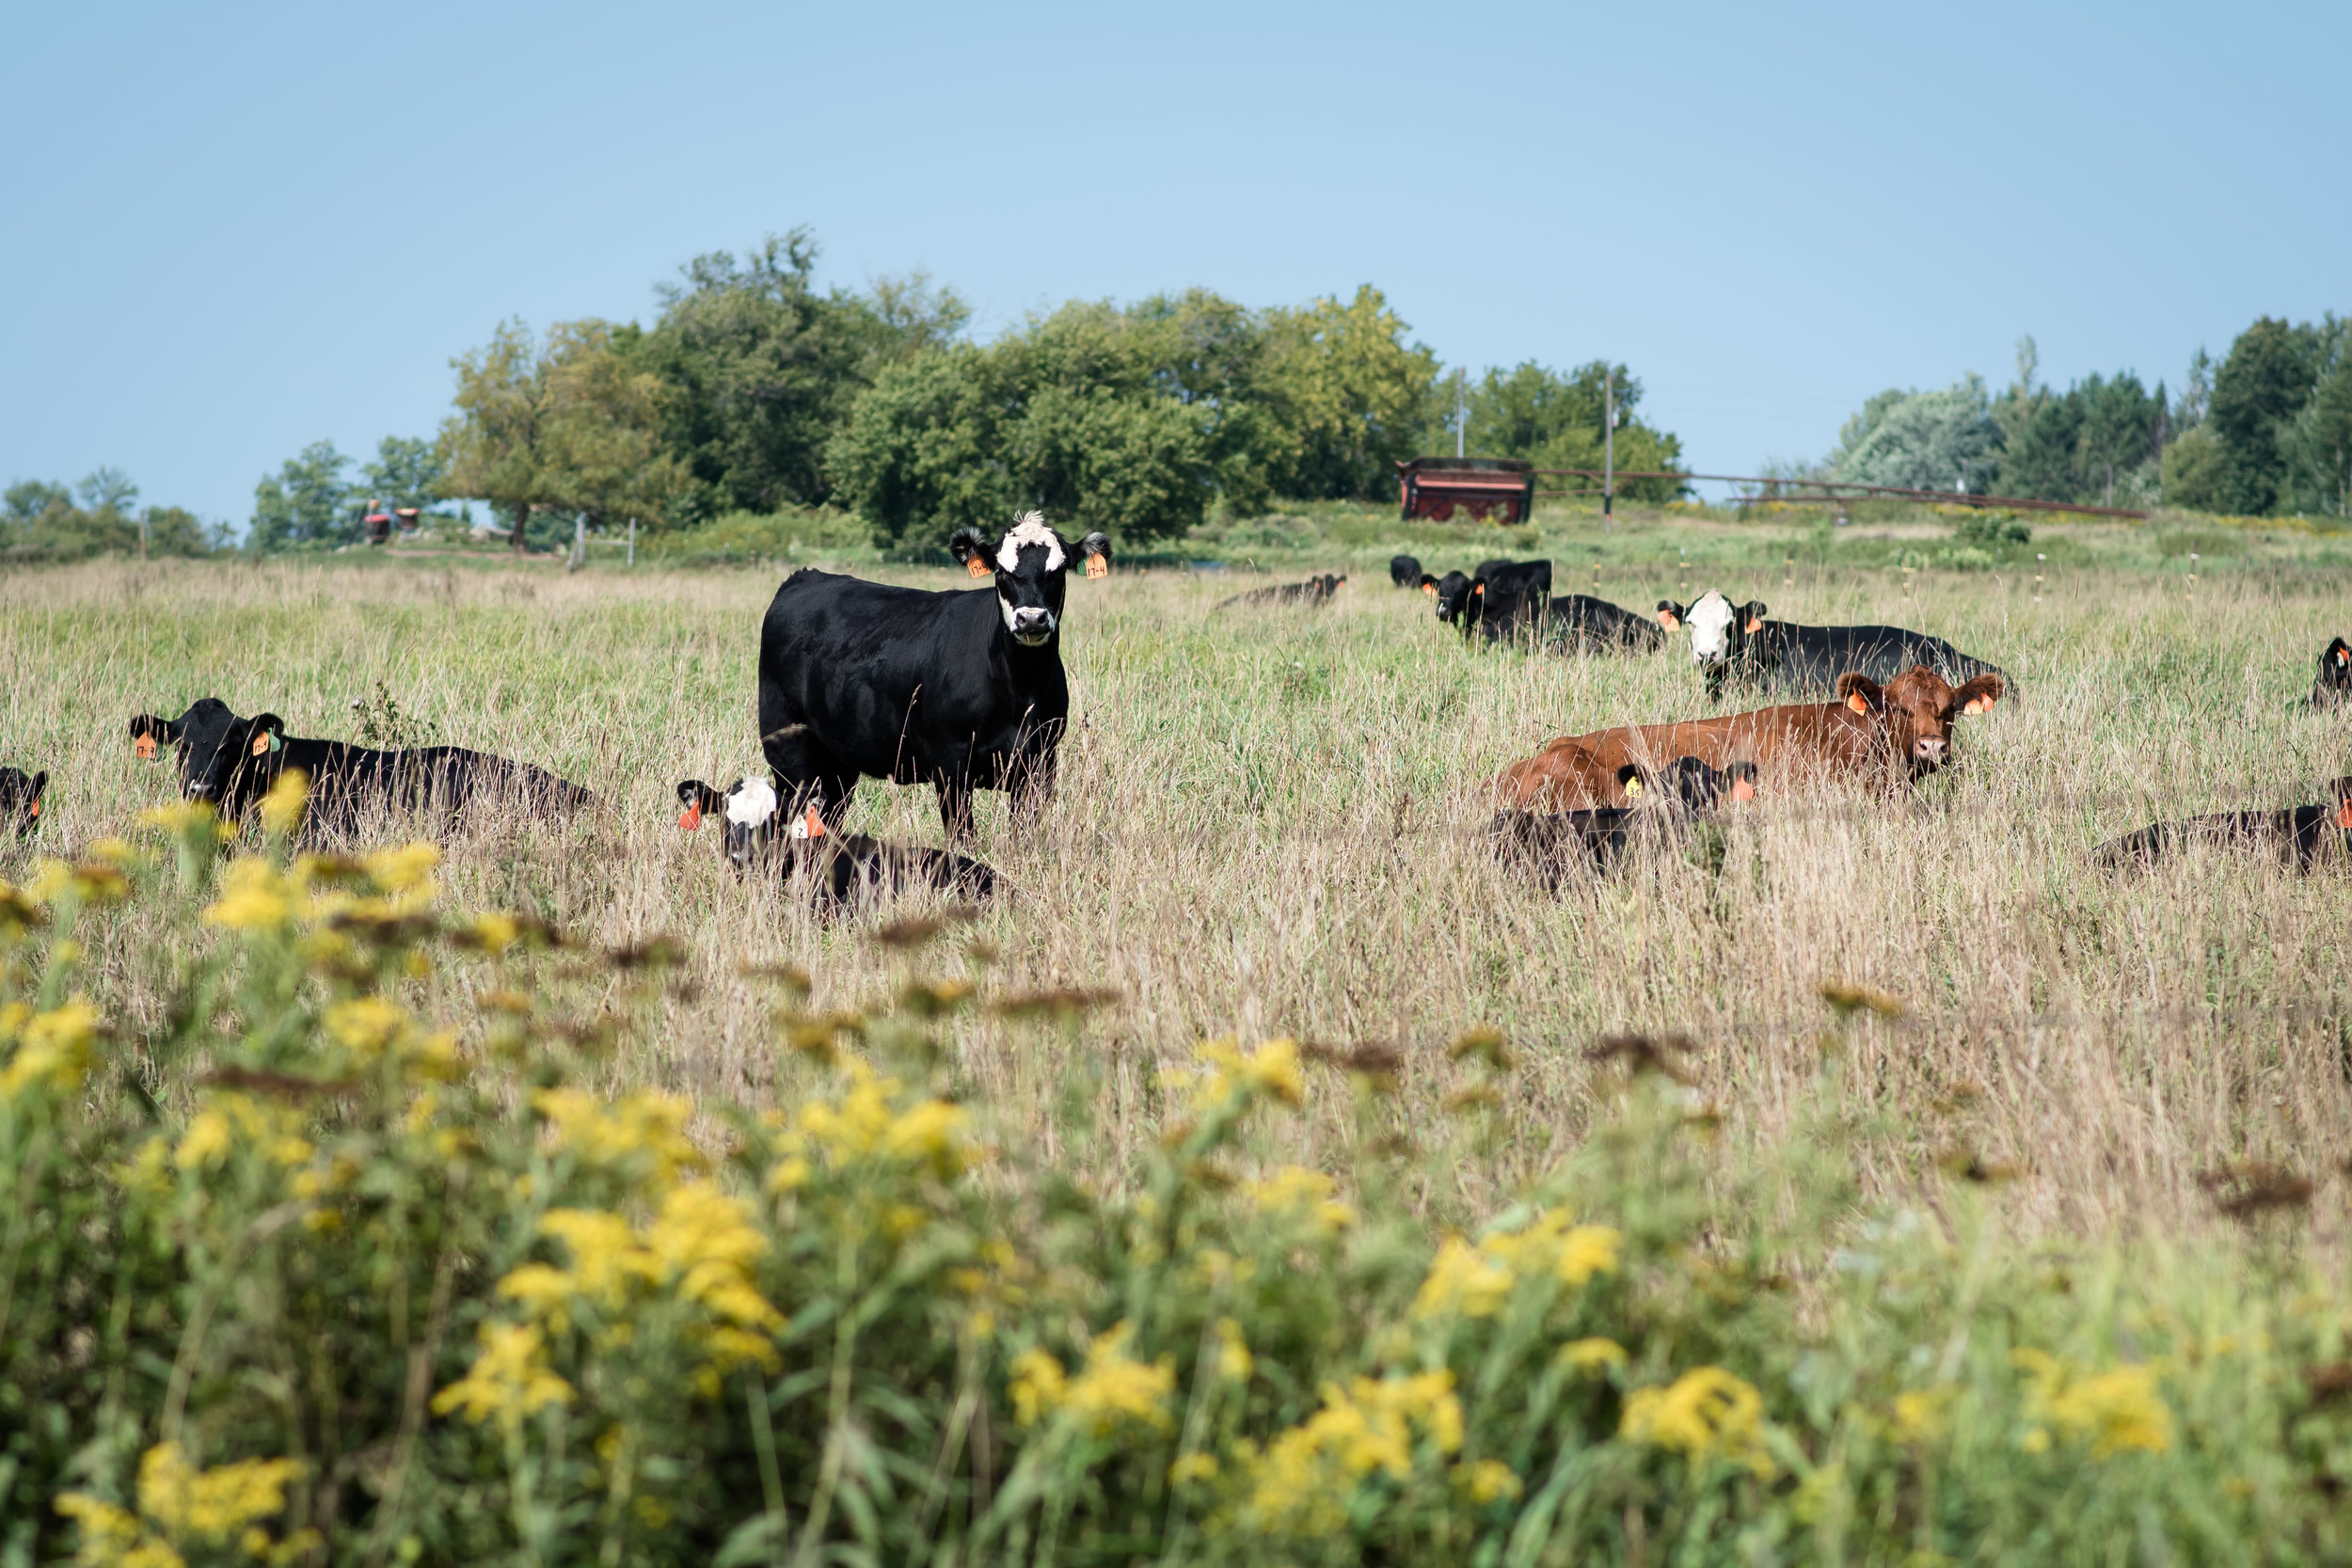 The field across the street is usually speckled with cows.